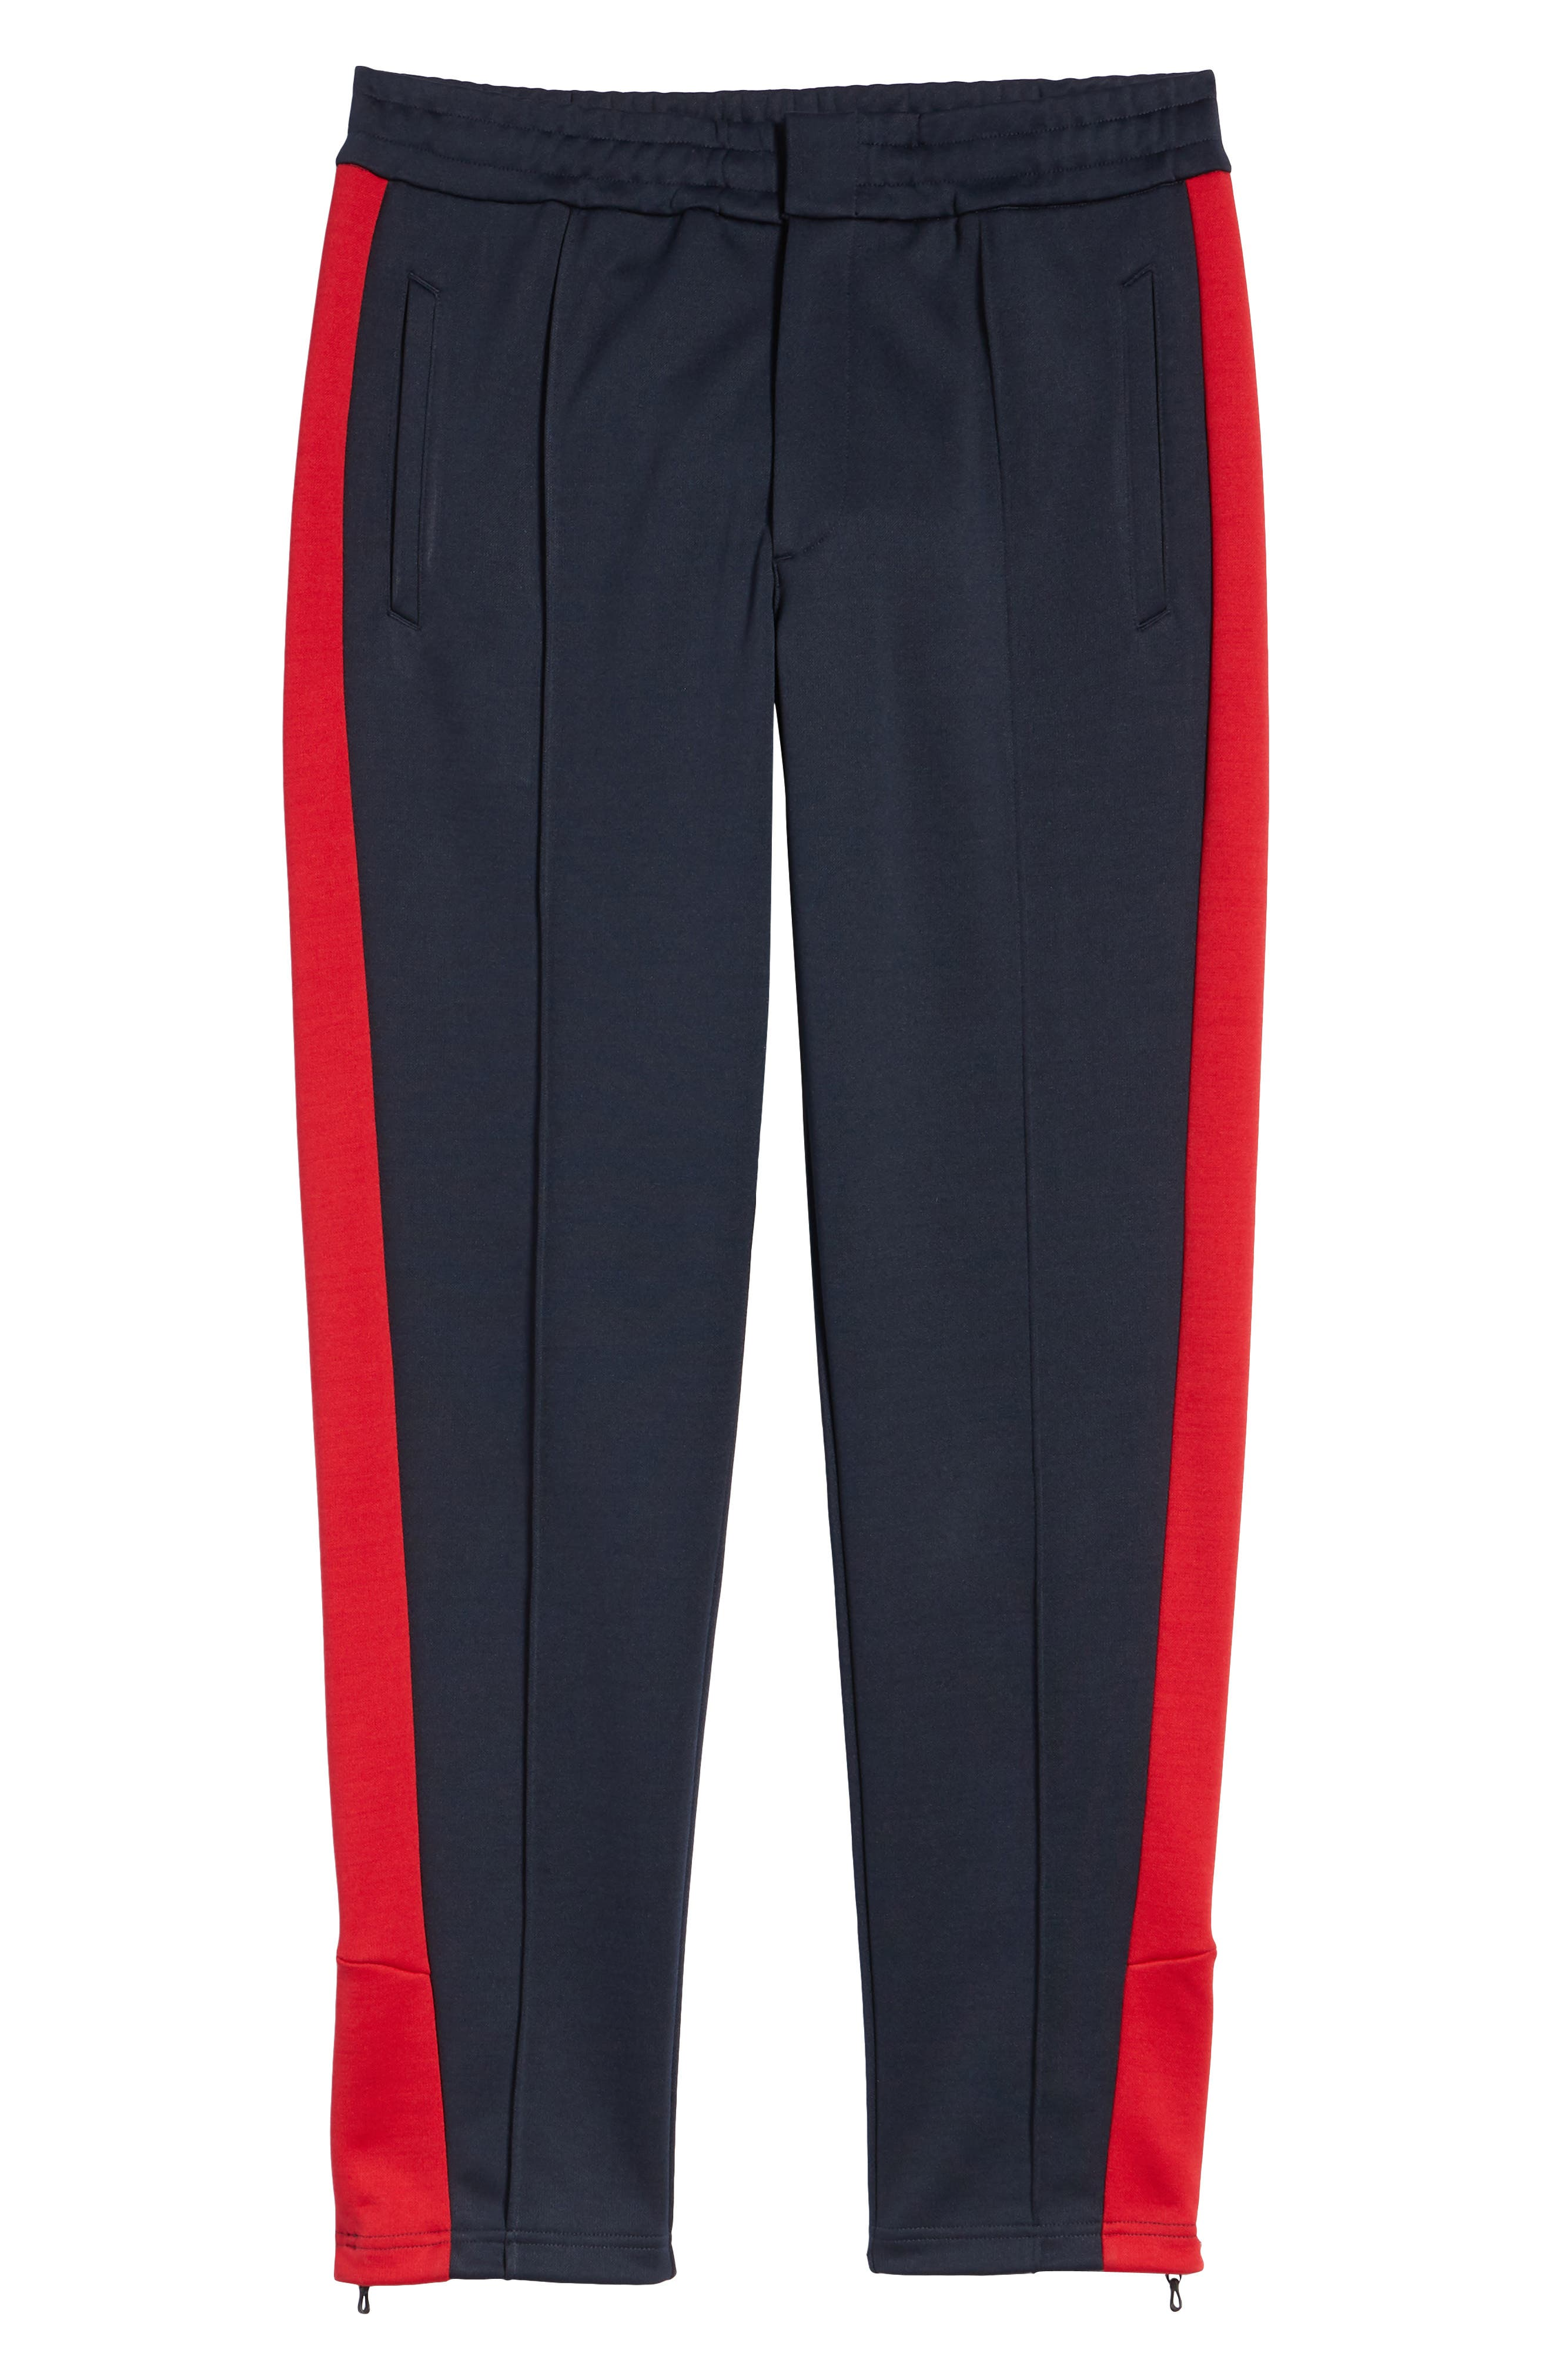 Club Slim Fit Track Pants,                             Alternate thumbnail 6, color,                             NAVY/ RED